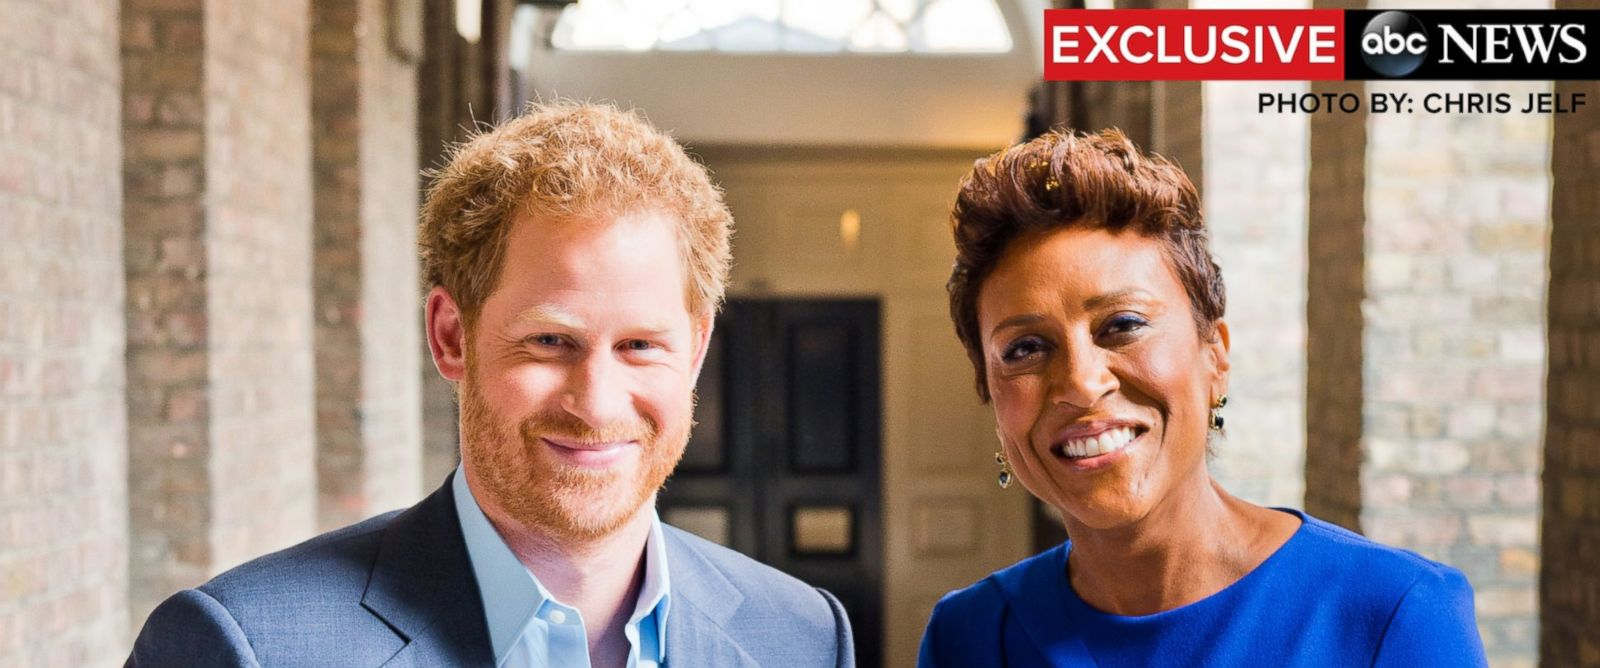 """PHOTO: Prince Harry speaks in an exclusive interview with Robin Roberts on ABCs """"Good Morning America."""""""